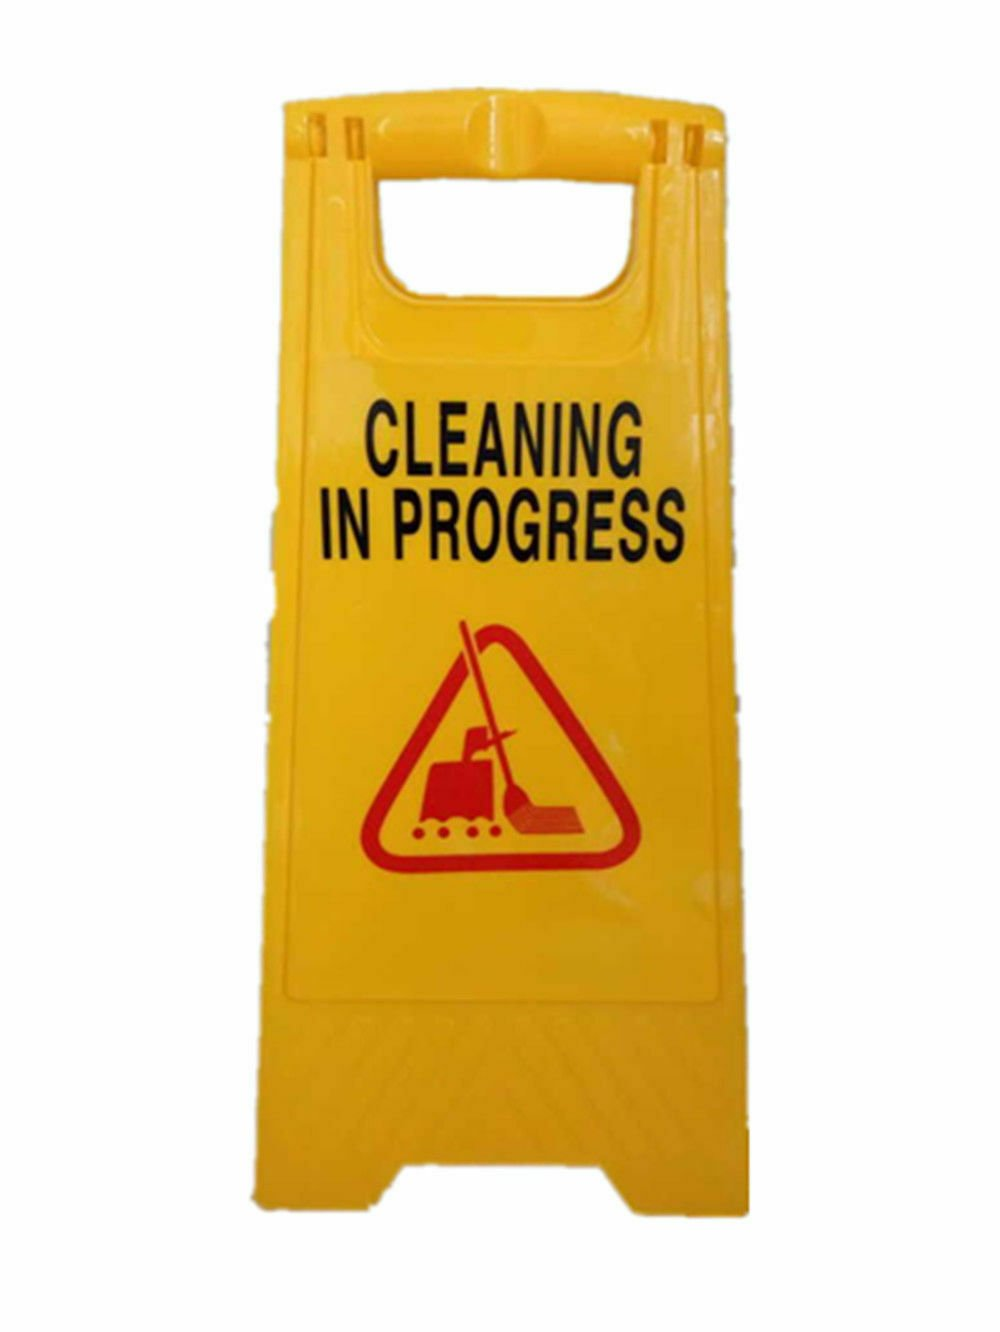 Caution Cleaning IN Progress Double Side Warning Board Bright Yellow Plastic